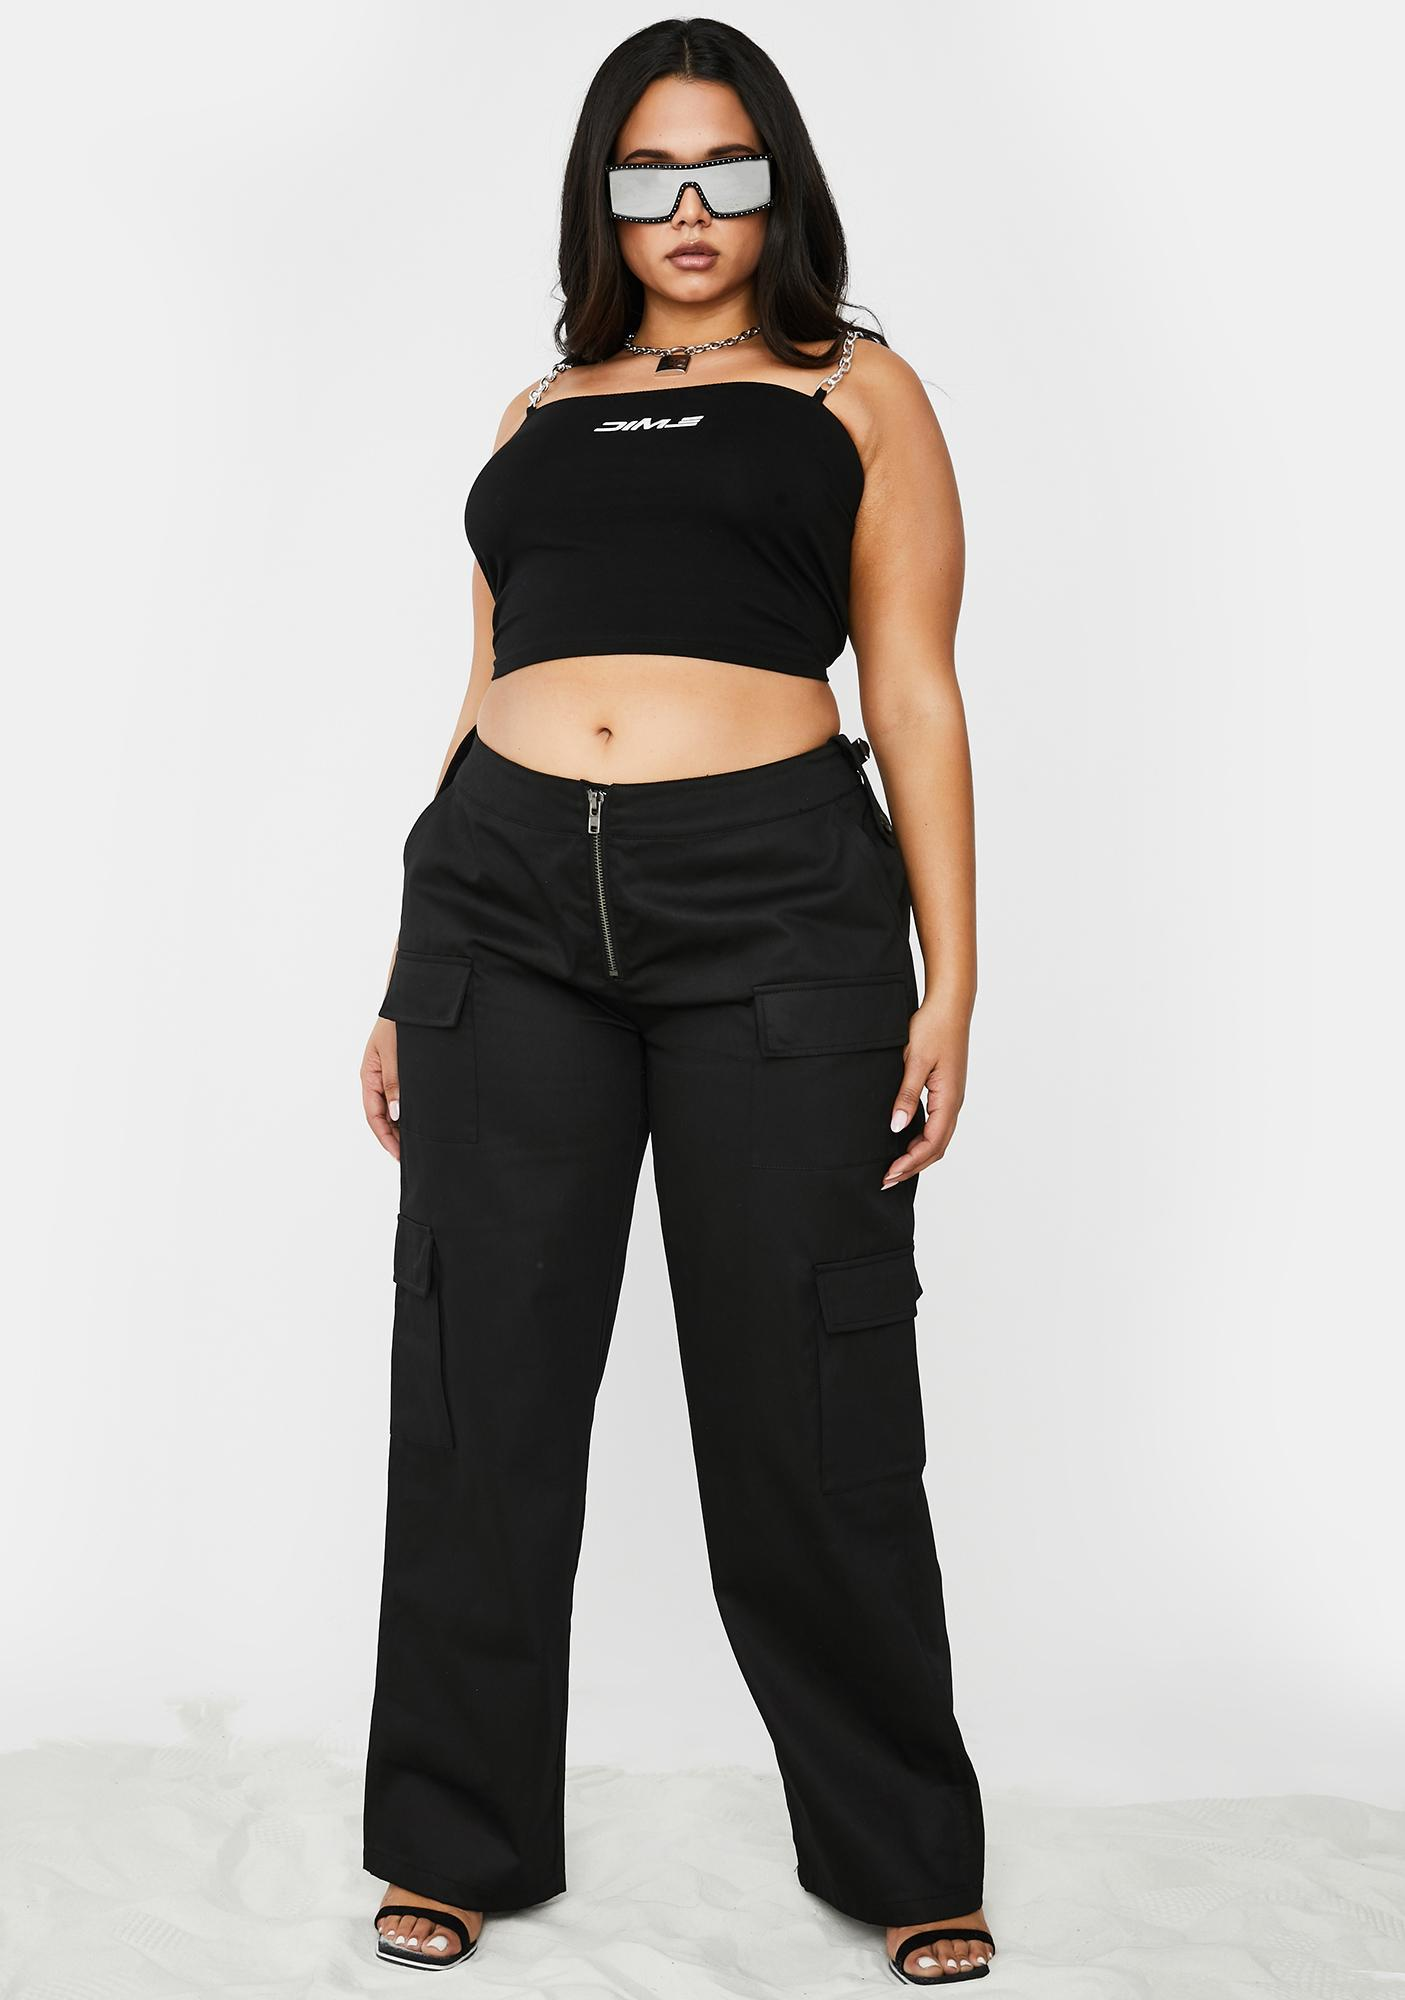 Poster Grl Late Booked Meetings On Rodeo Cargo Pants